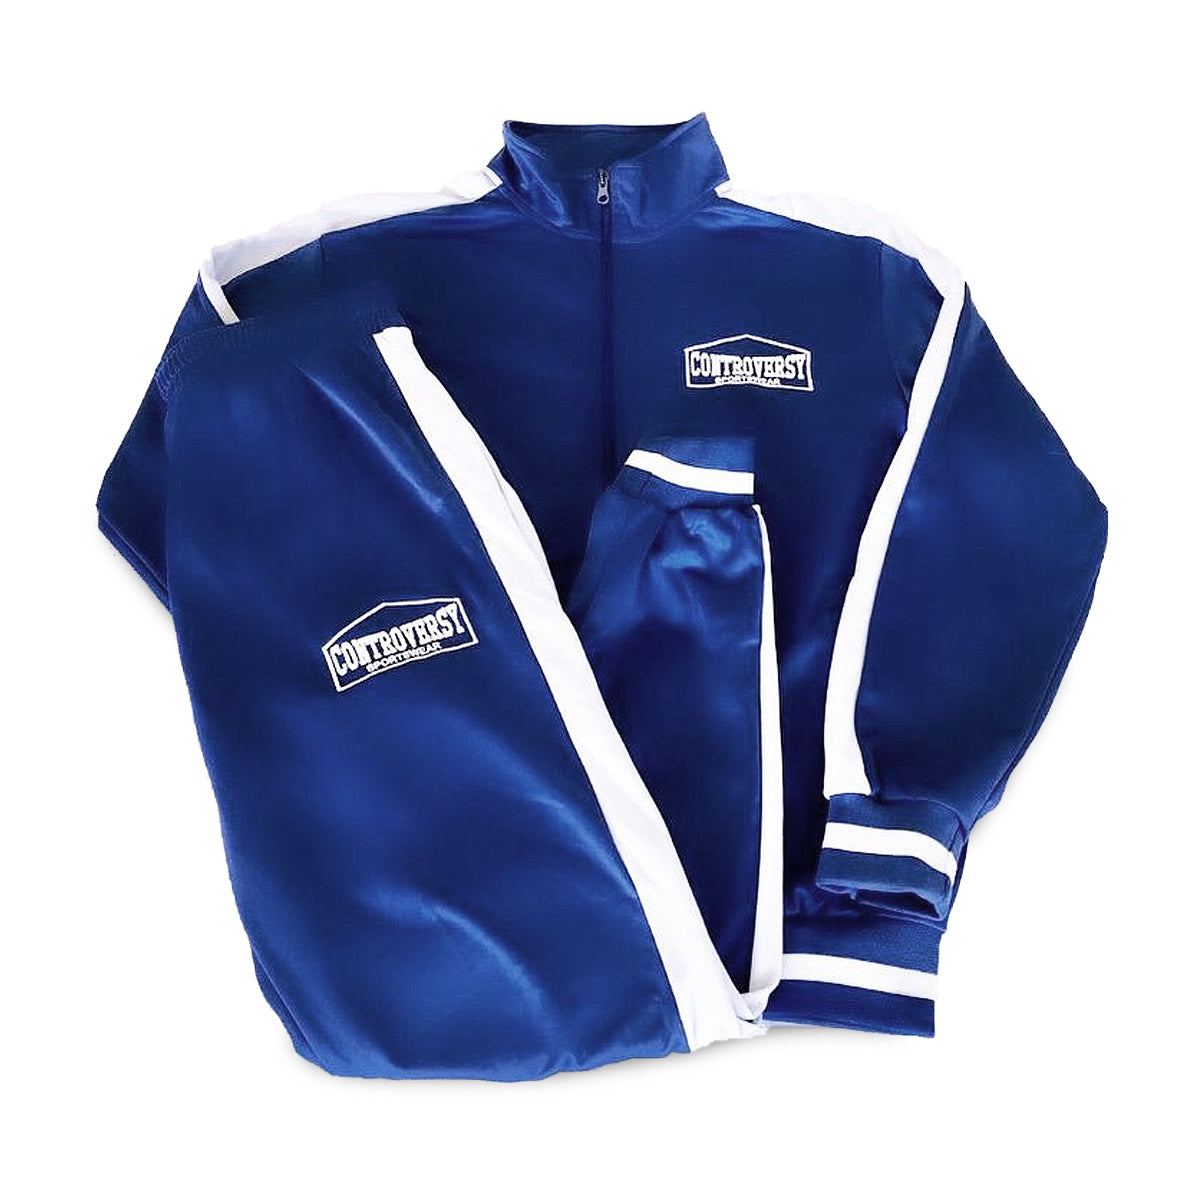 Controversy Sportswear Tracksuit (Blue)